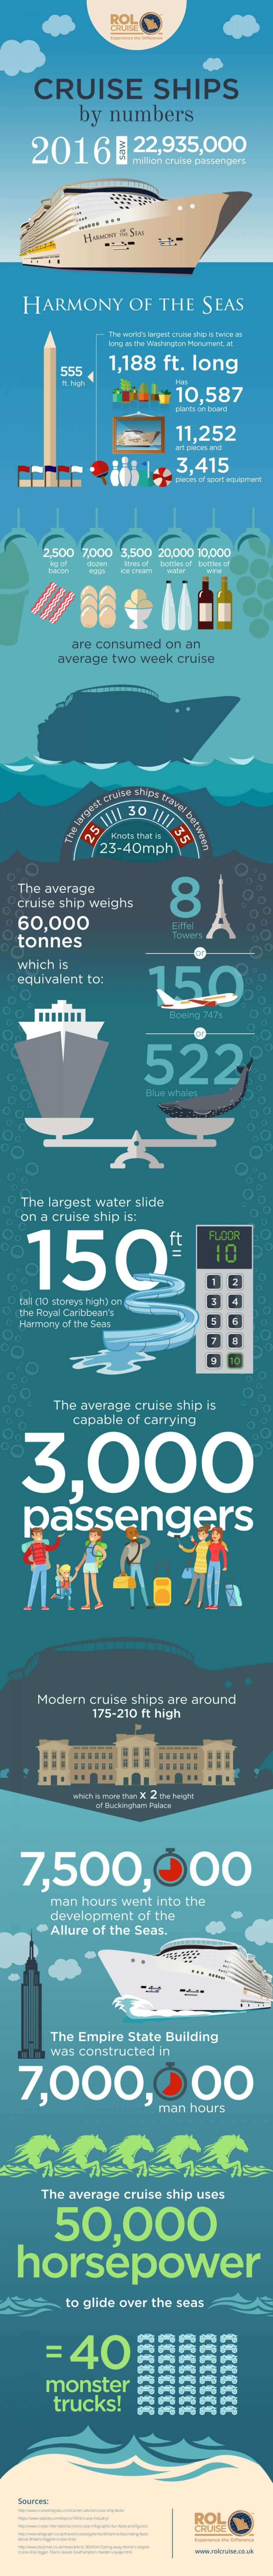 ROL Cruise ships by numbers